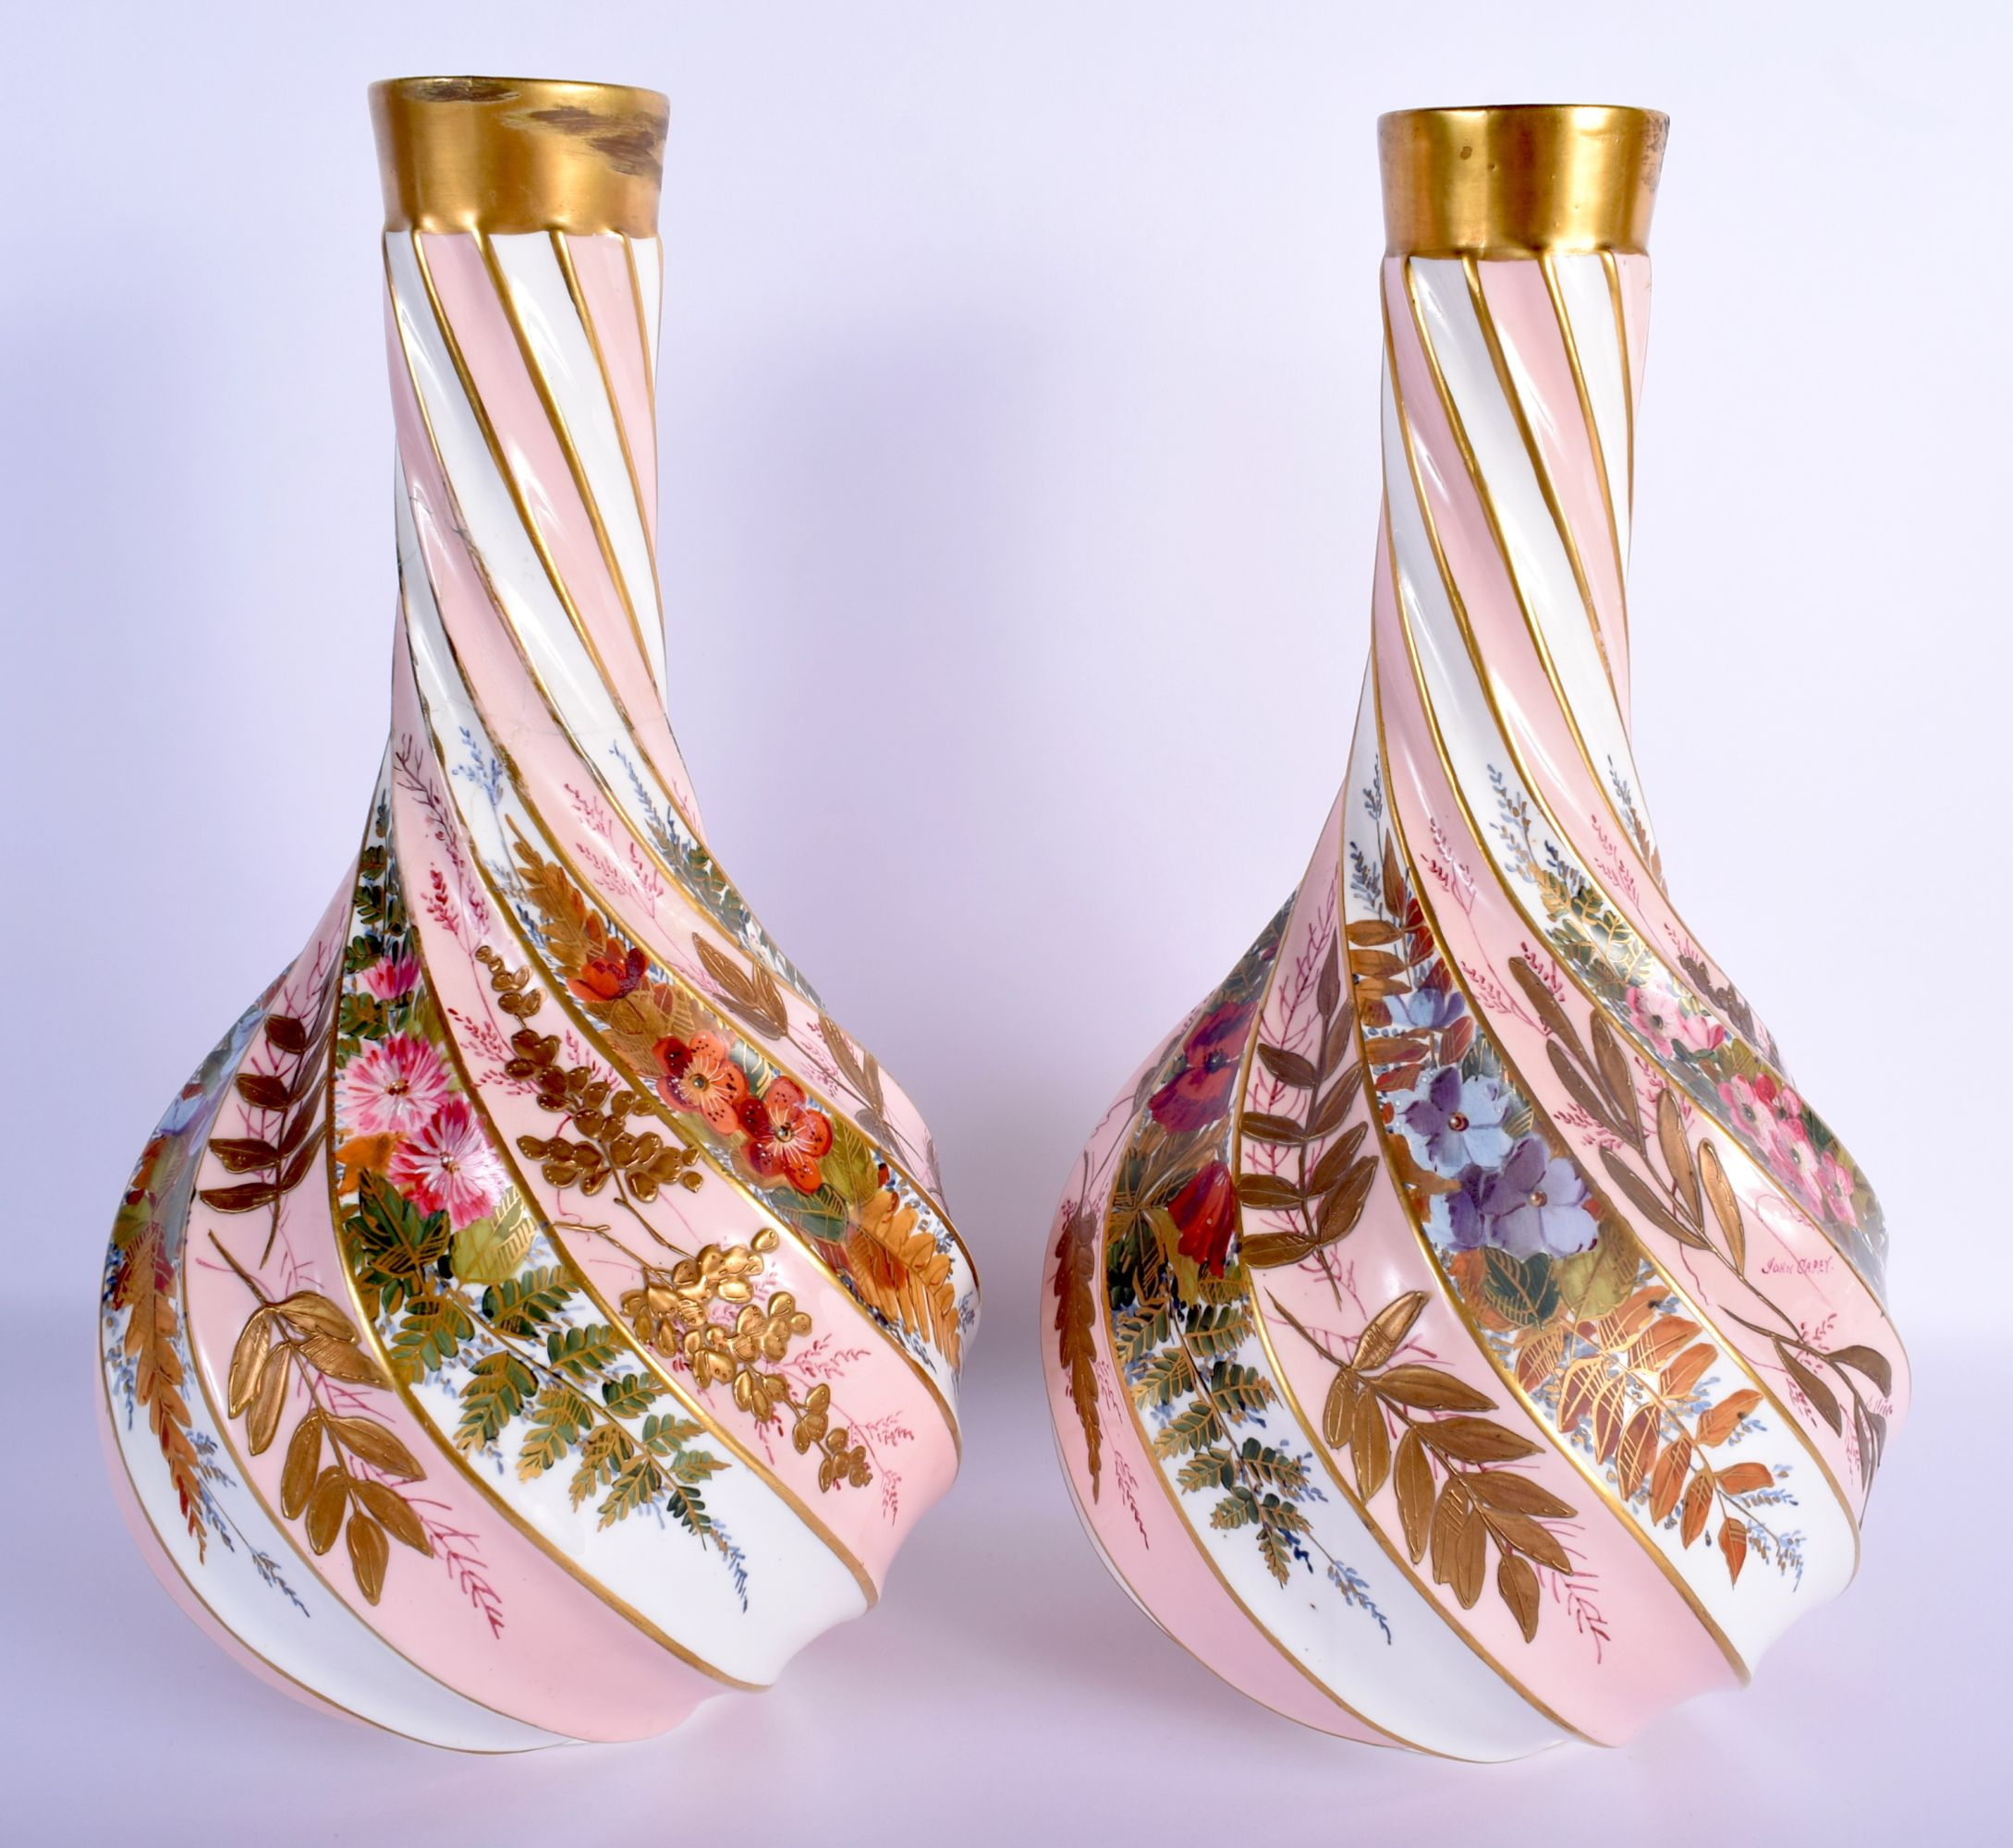 A PAIR OF 19TH CENTURY AESTHETIC MOVEMENT WRYTHEN MOULDED PORCELAIN BURSLEM VASES enamelled with flo - Image 2 of 3